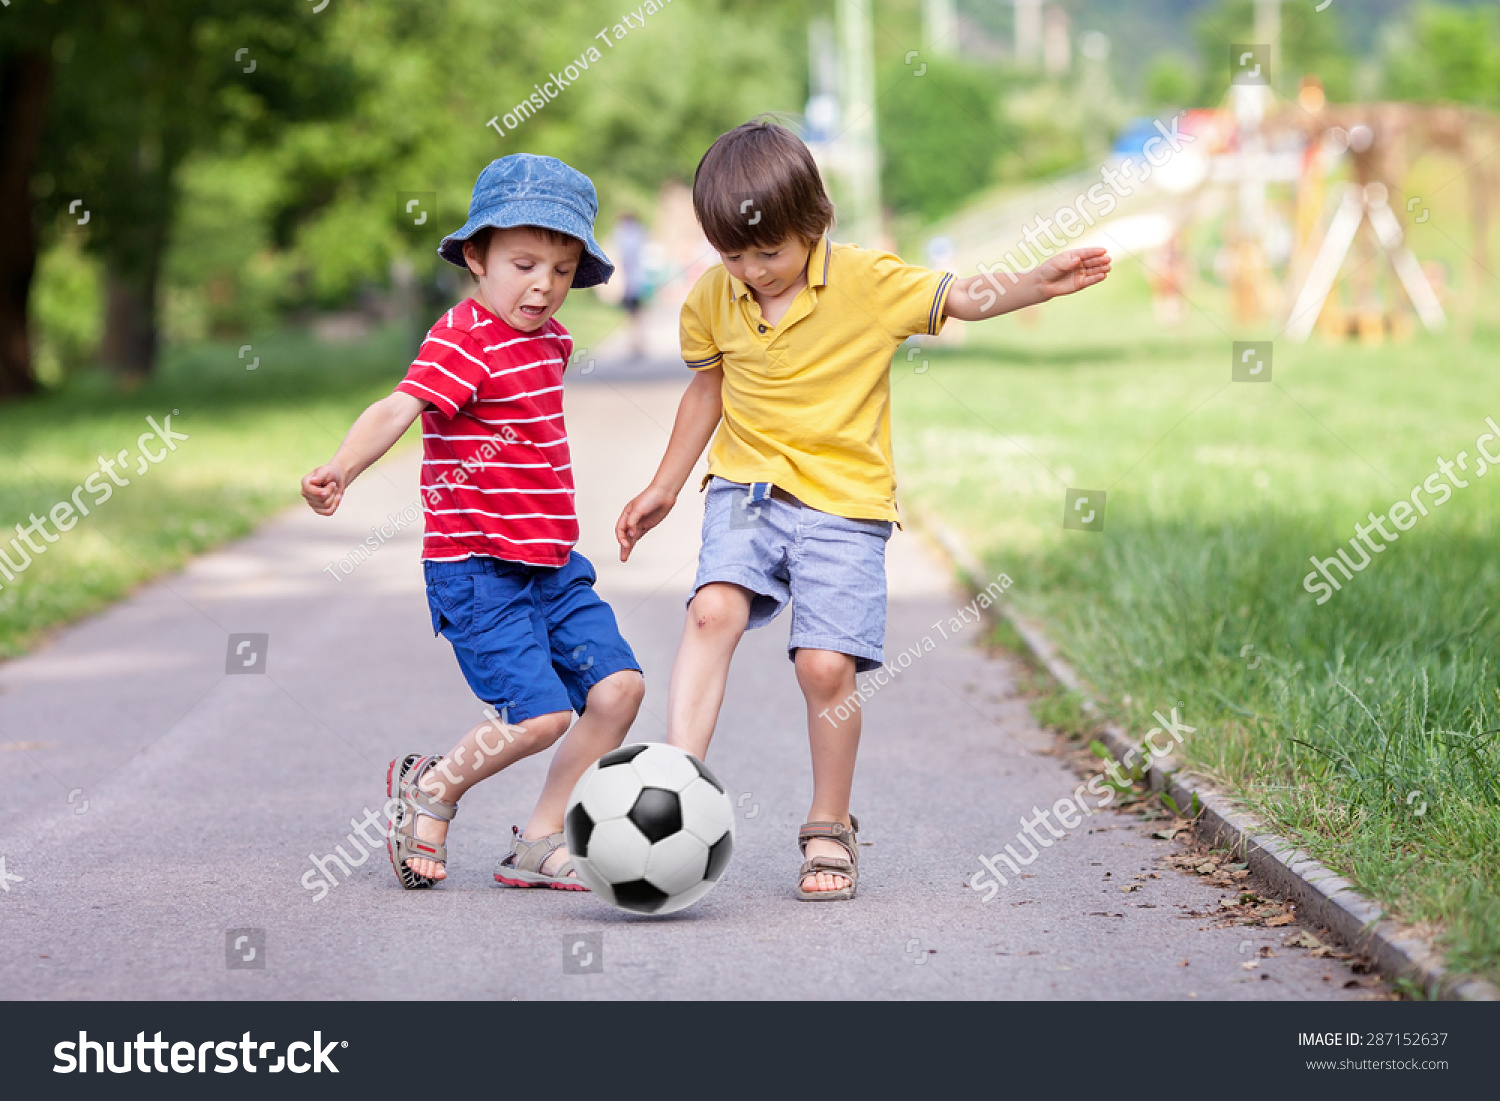 two cute little kids playing football together summertime children playing soccer outdoor - Little Kids Pictures